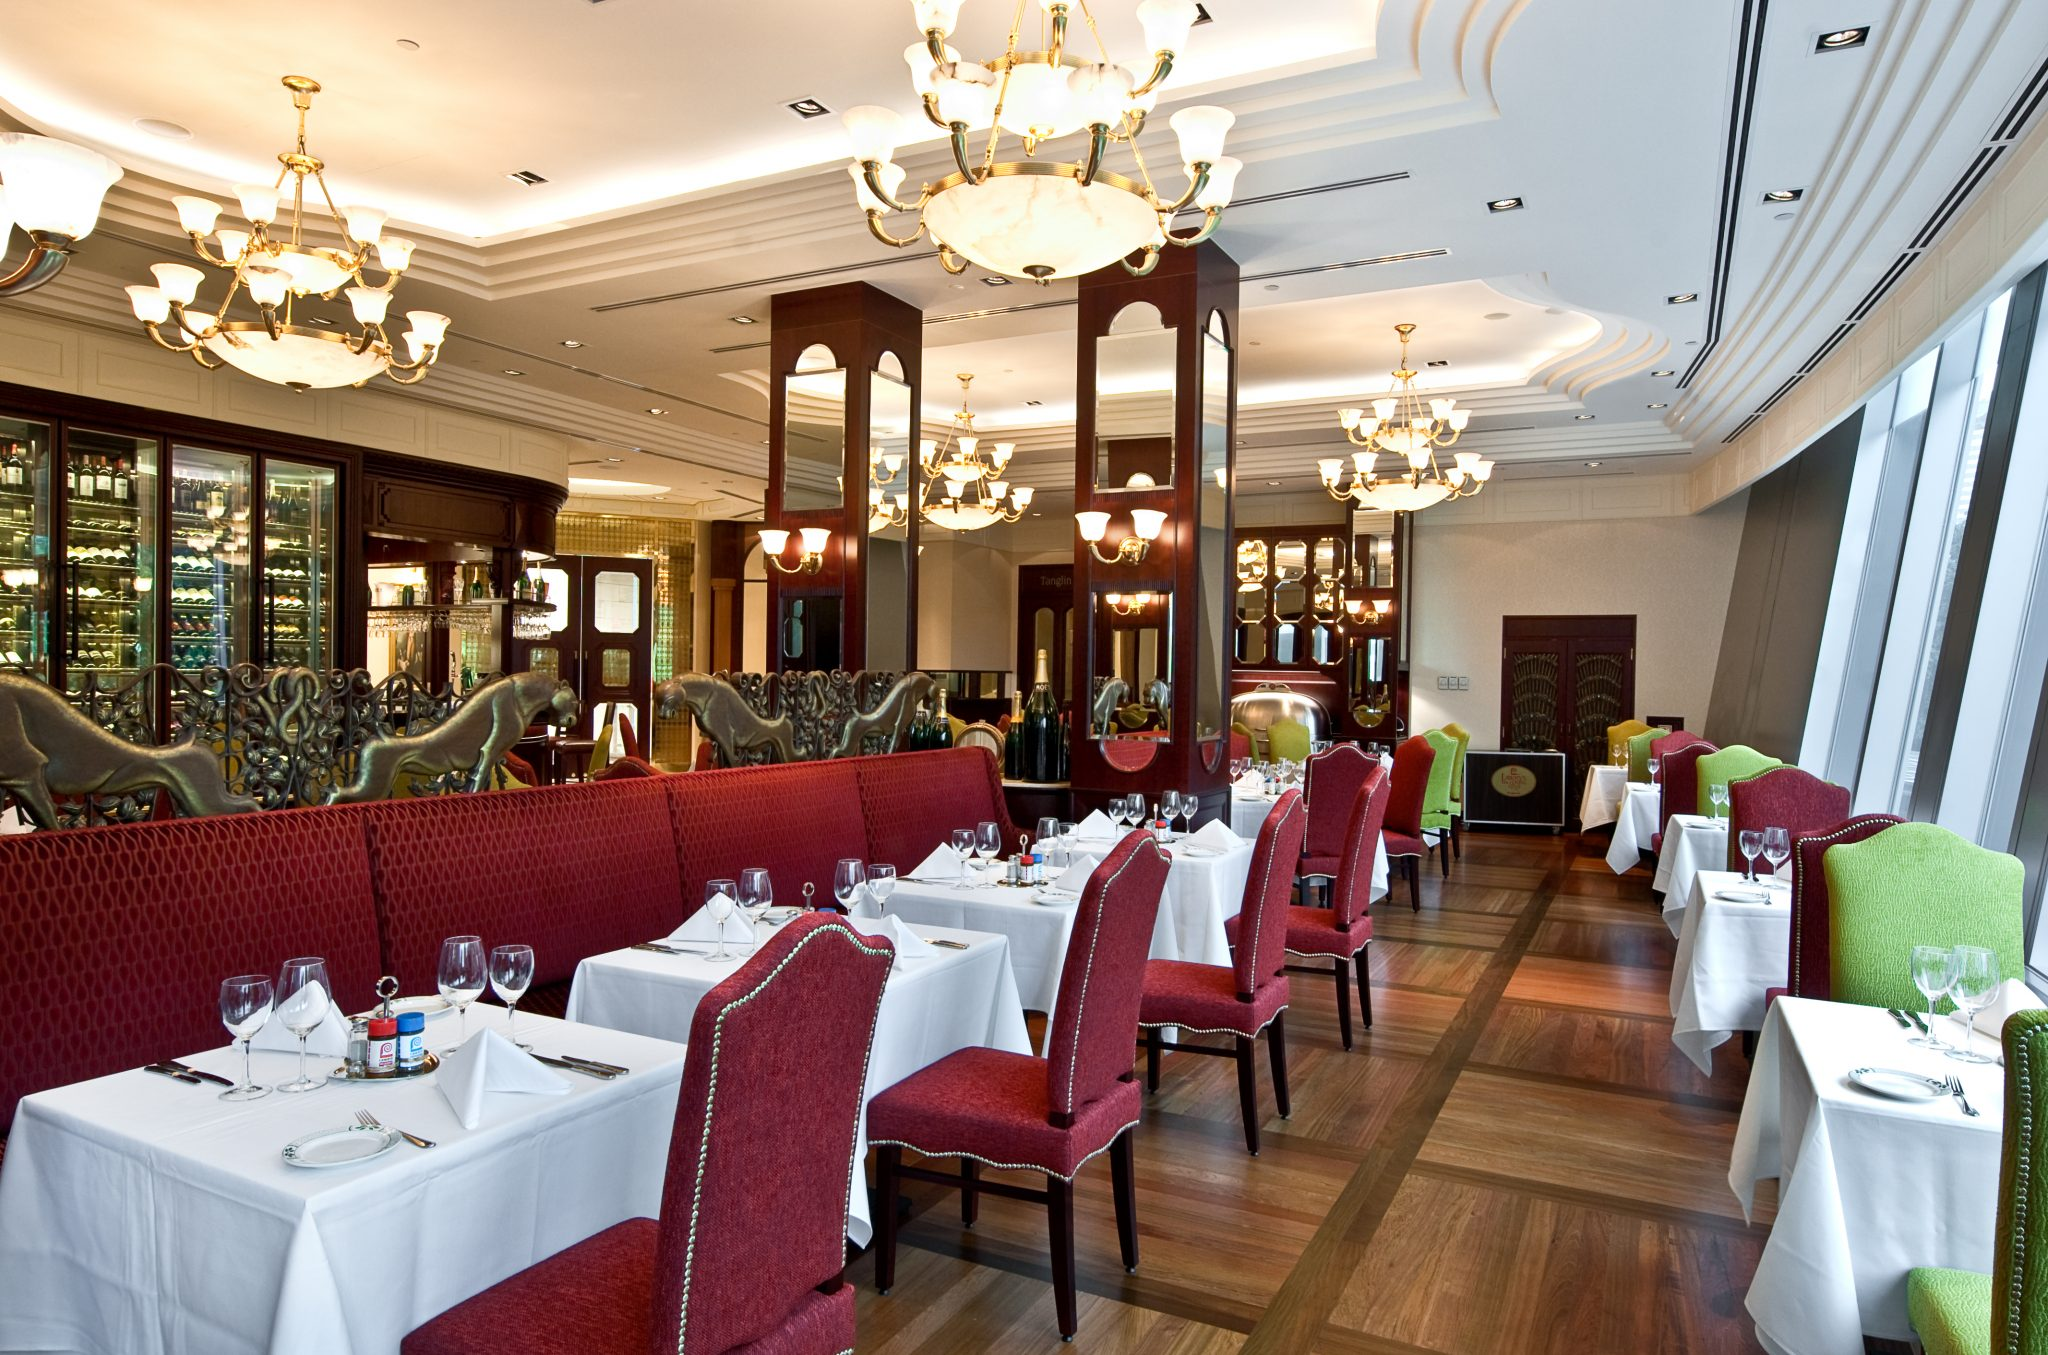 Lawry's Main Dining Interior